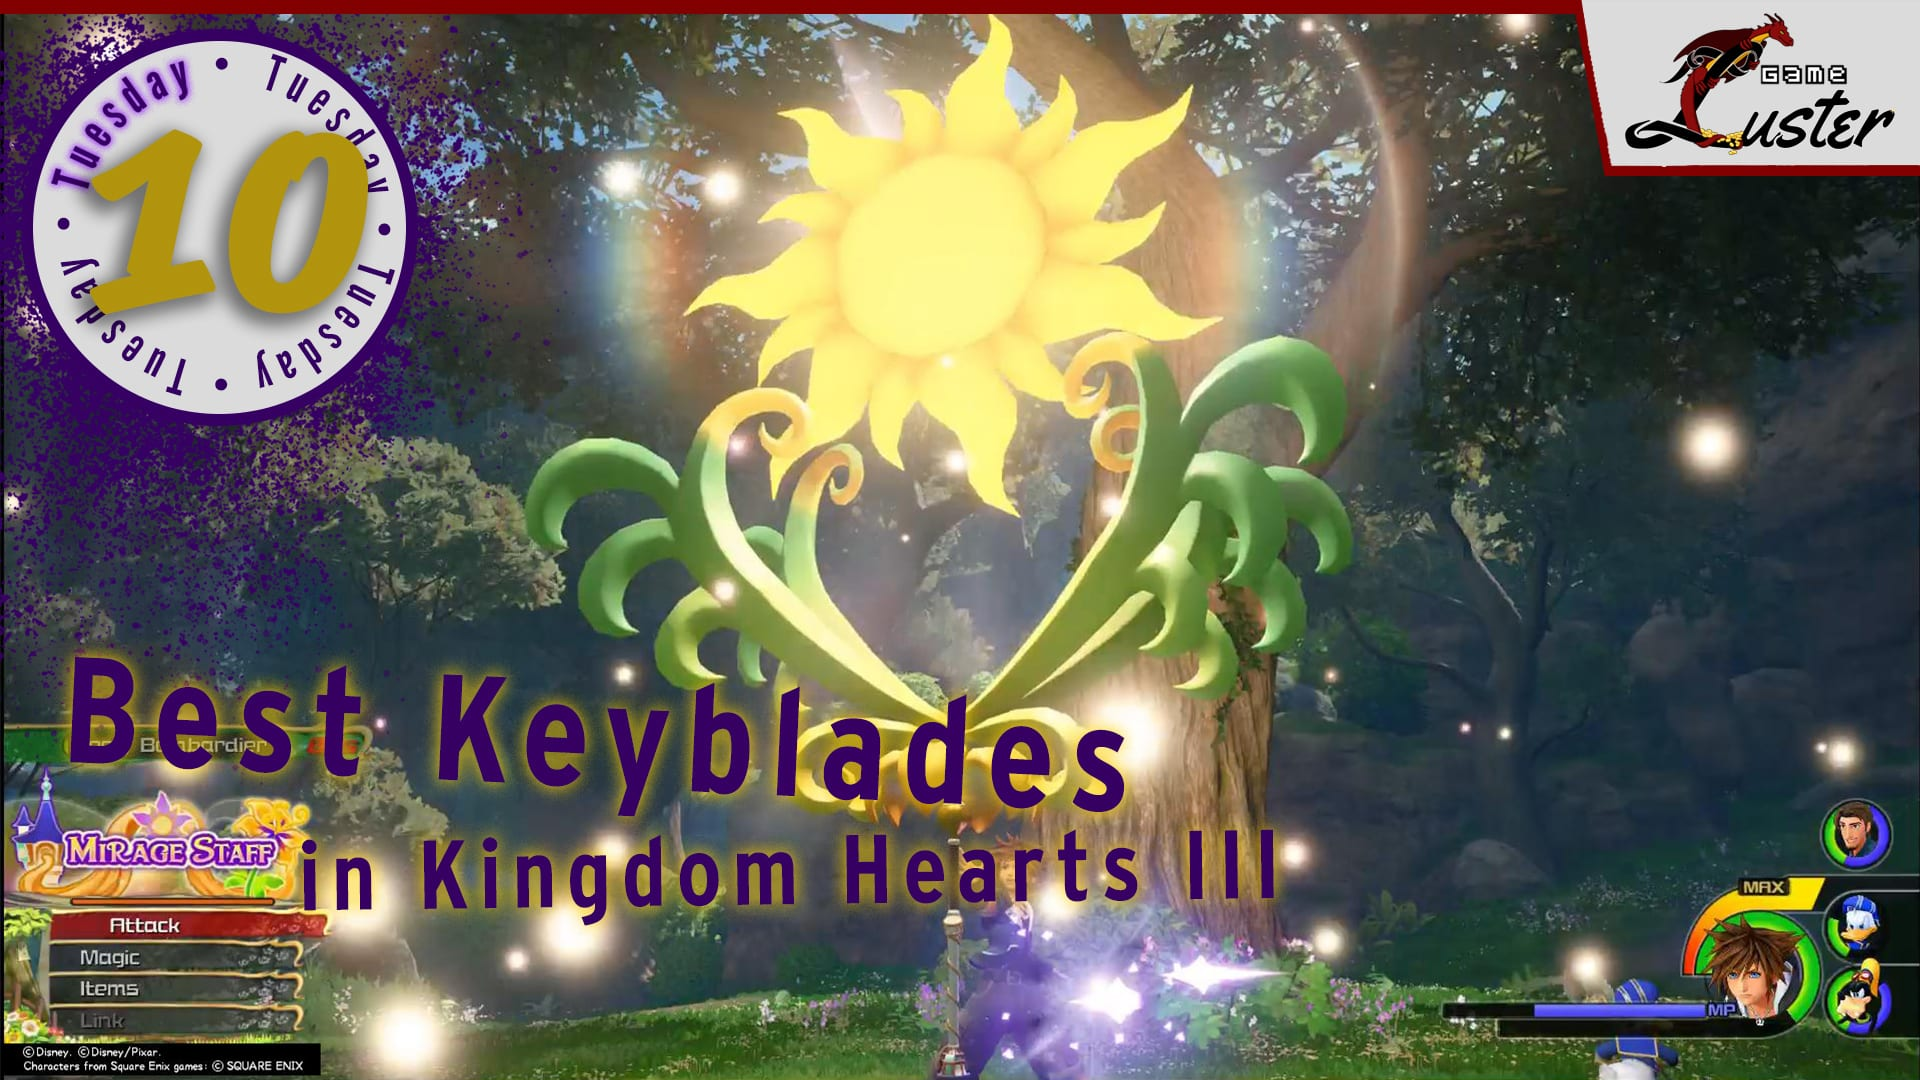 Tuesday 10 Kingdom Hearts Keyblades